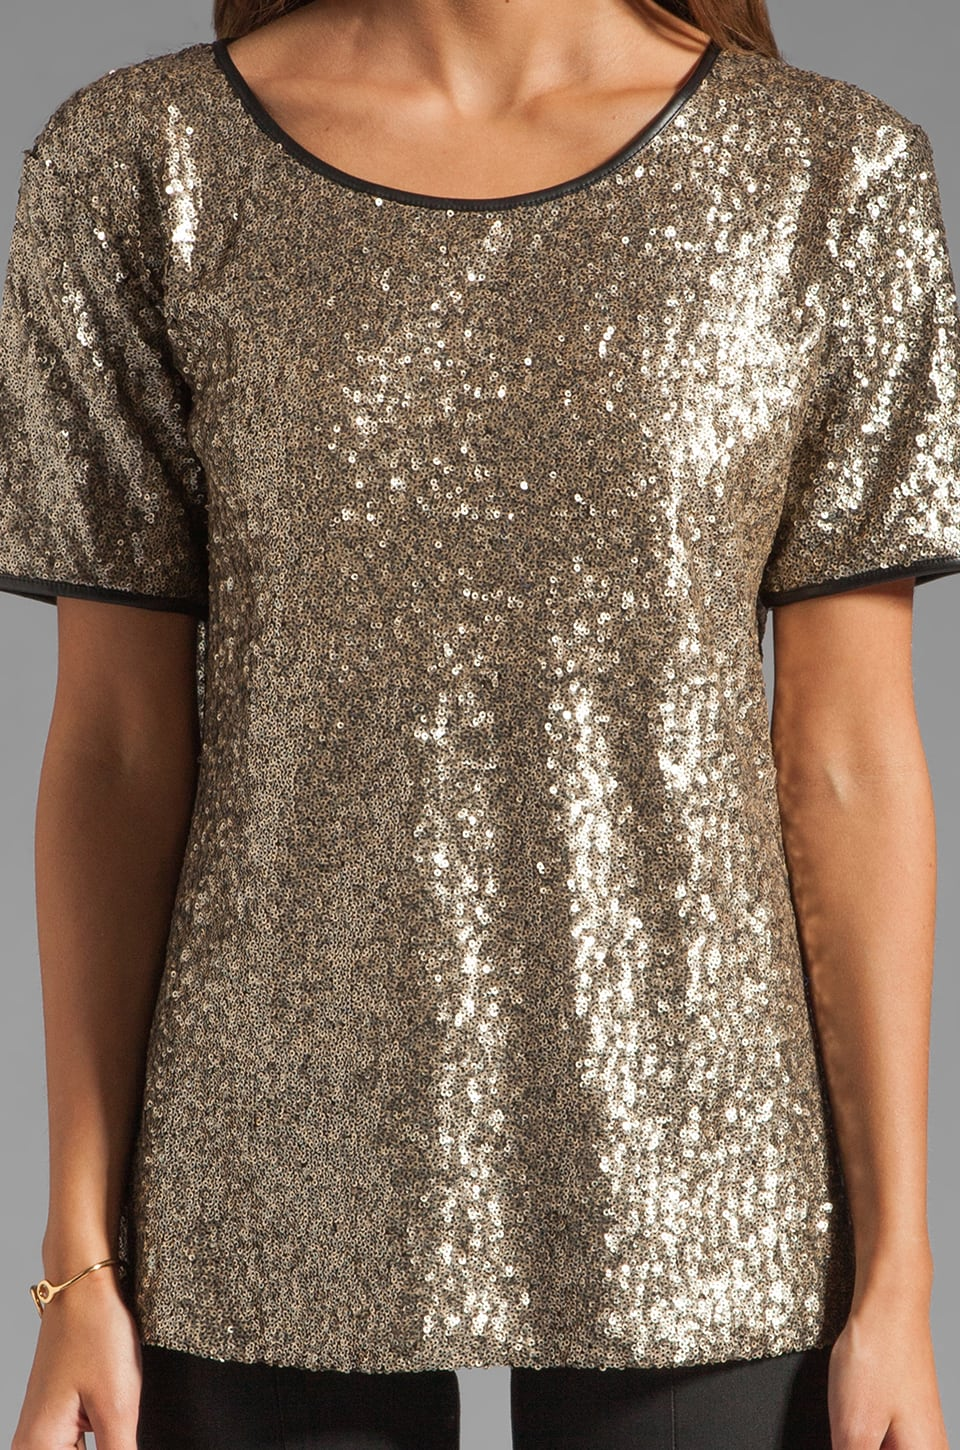 Lovers + Friends Chic Top in Bronze Sequin